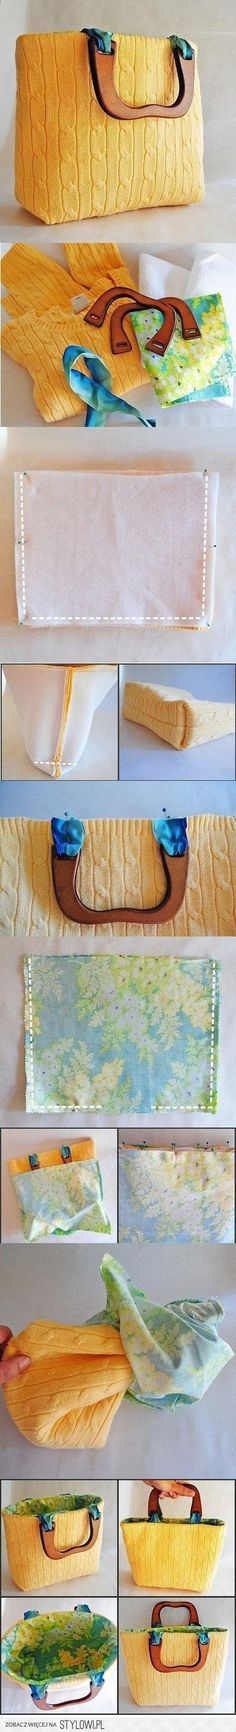 Bag tutorial by jannine